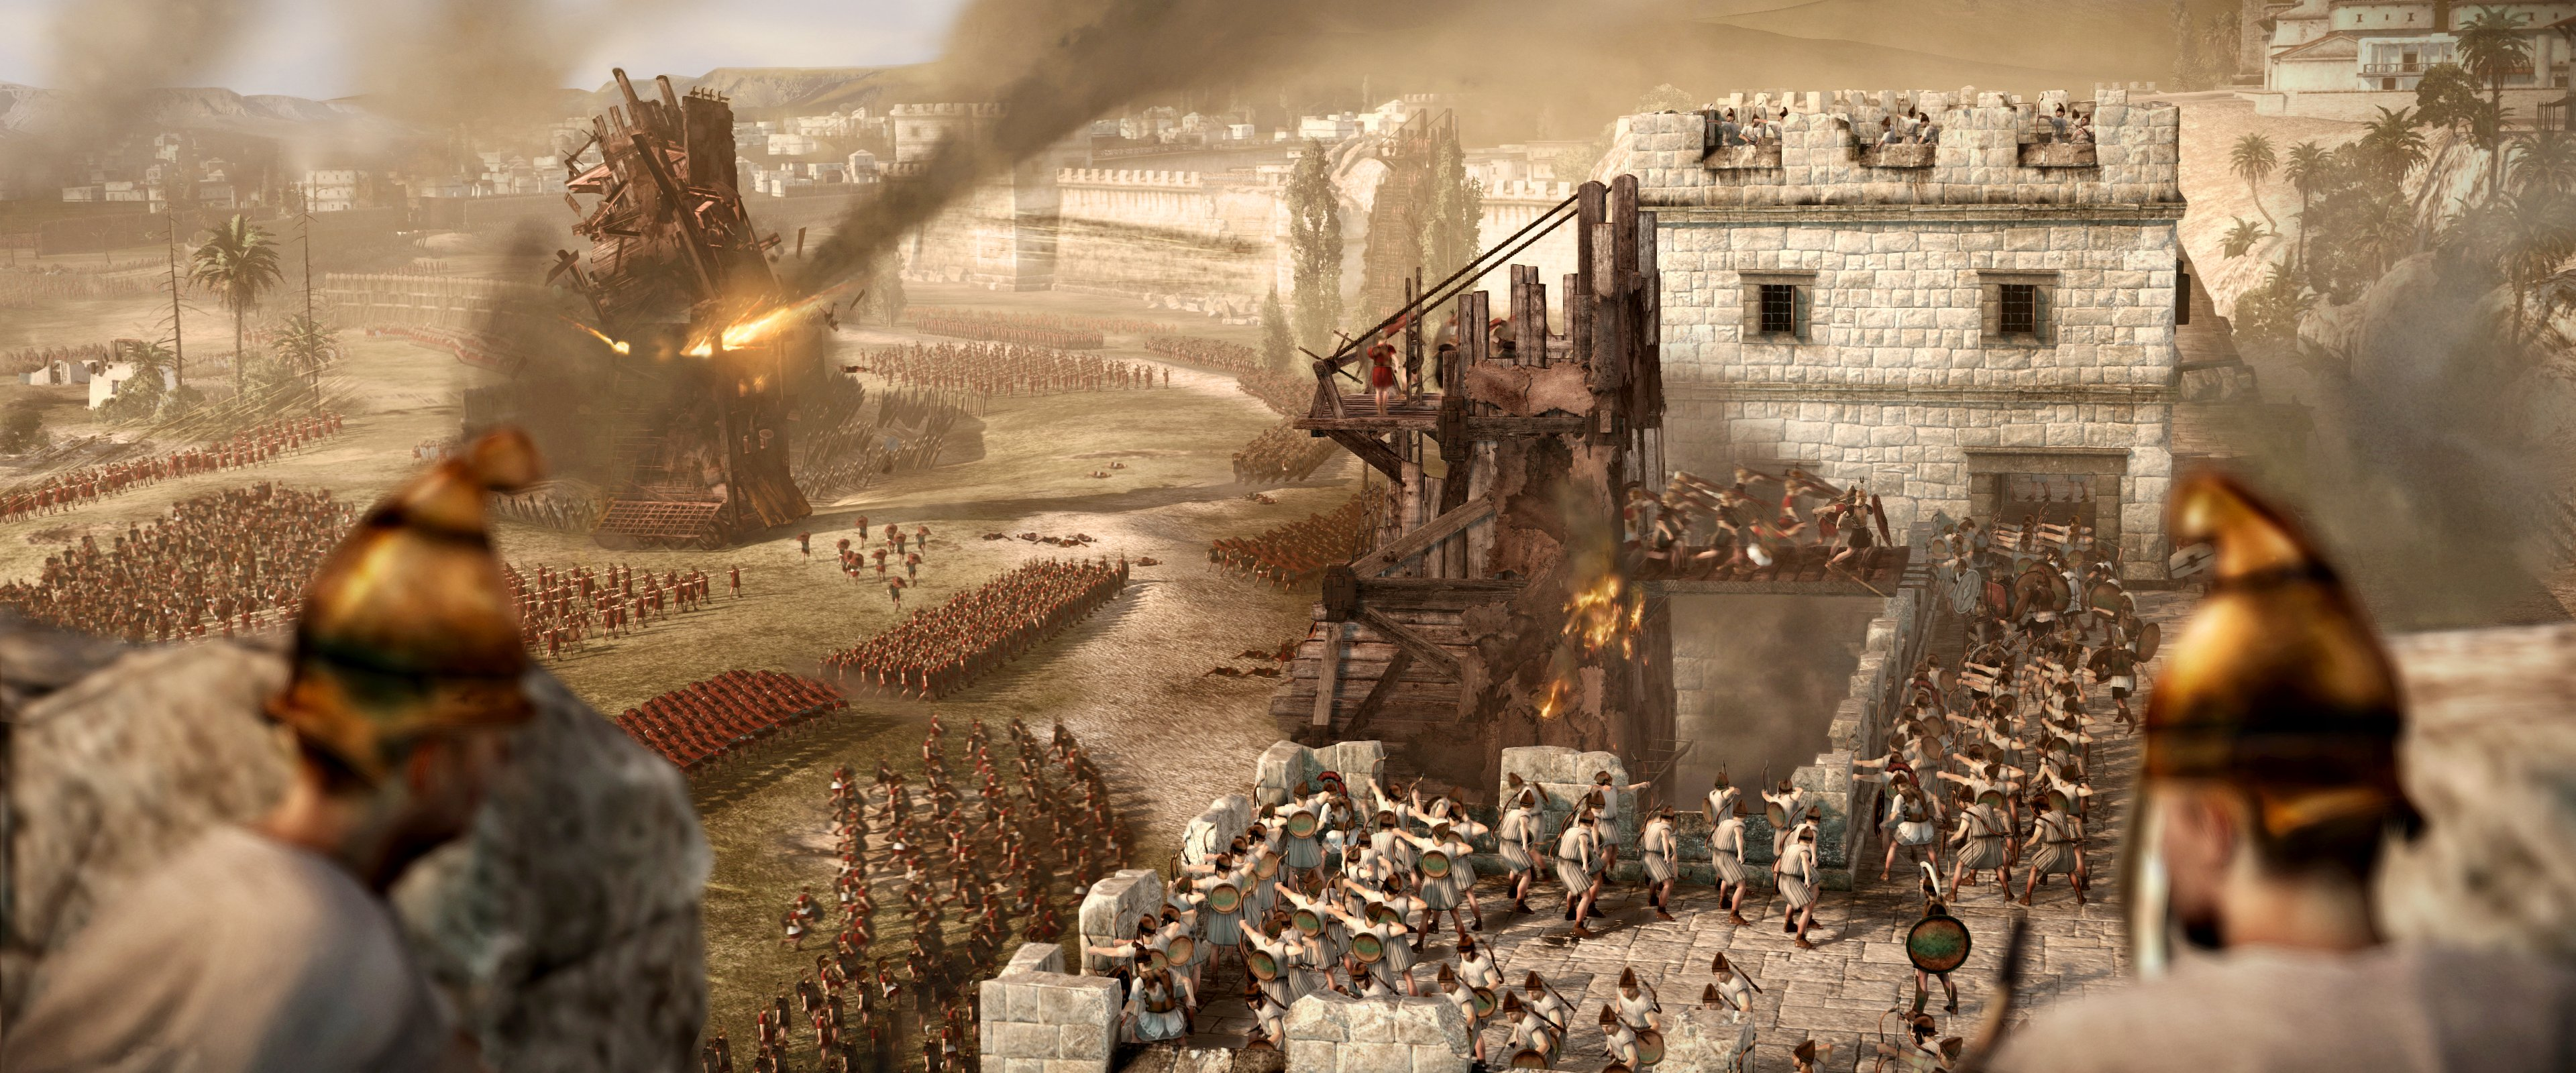 Free Download Total War Rome Ii Computer Wallpapers Desktop